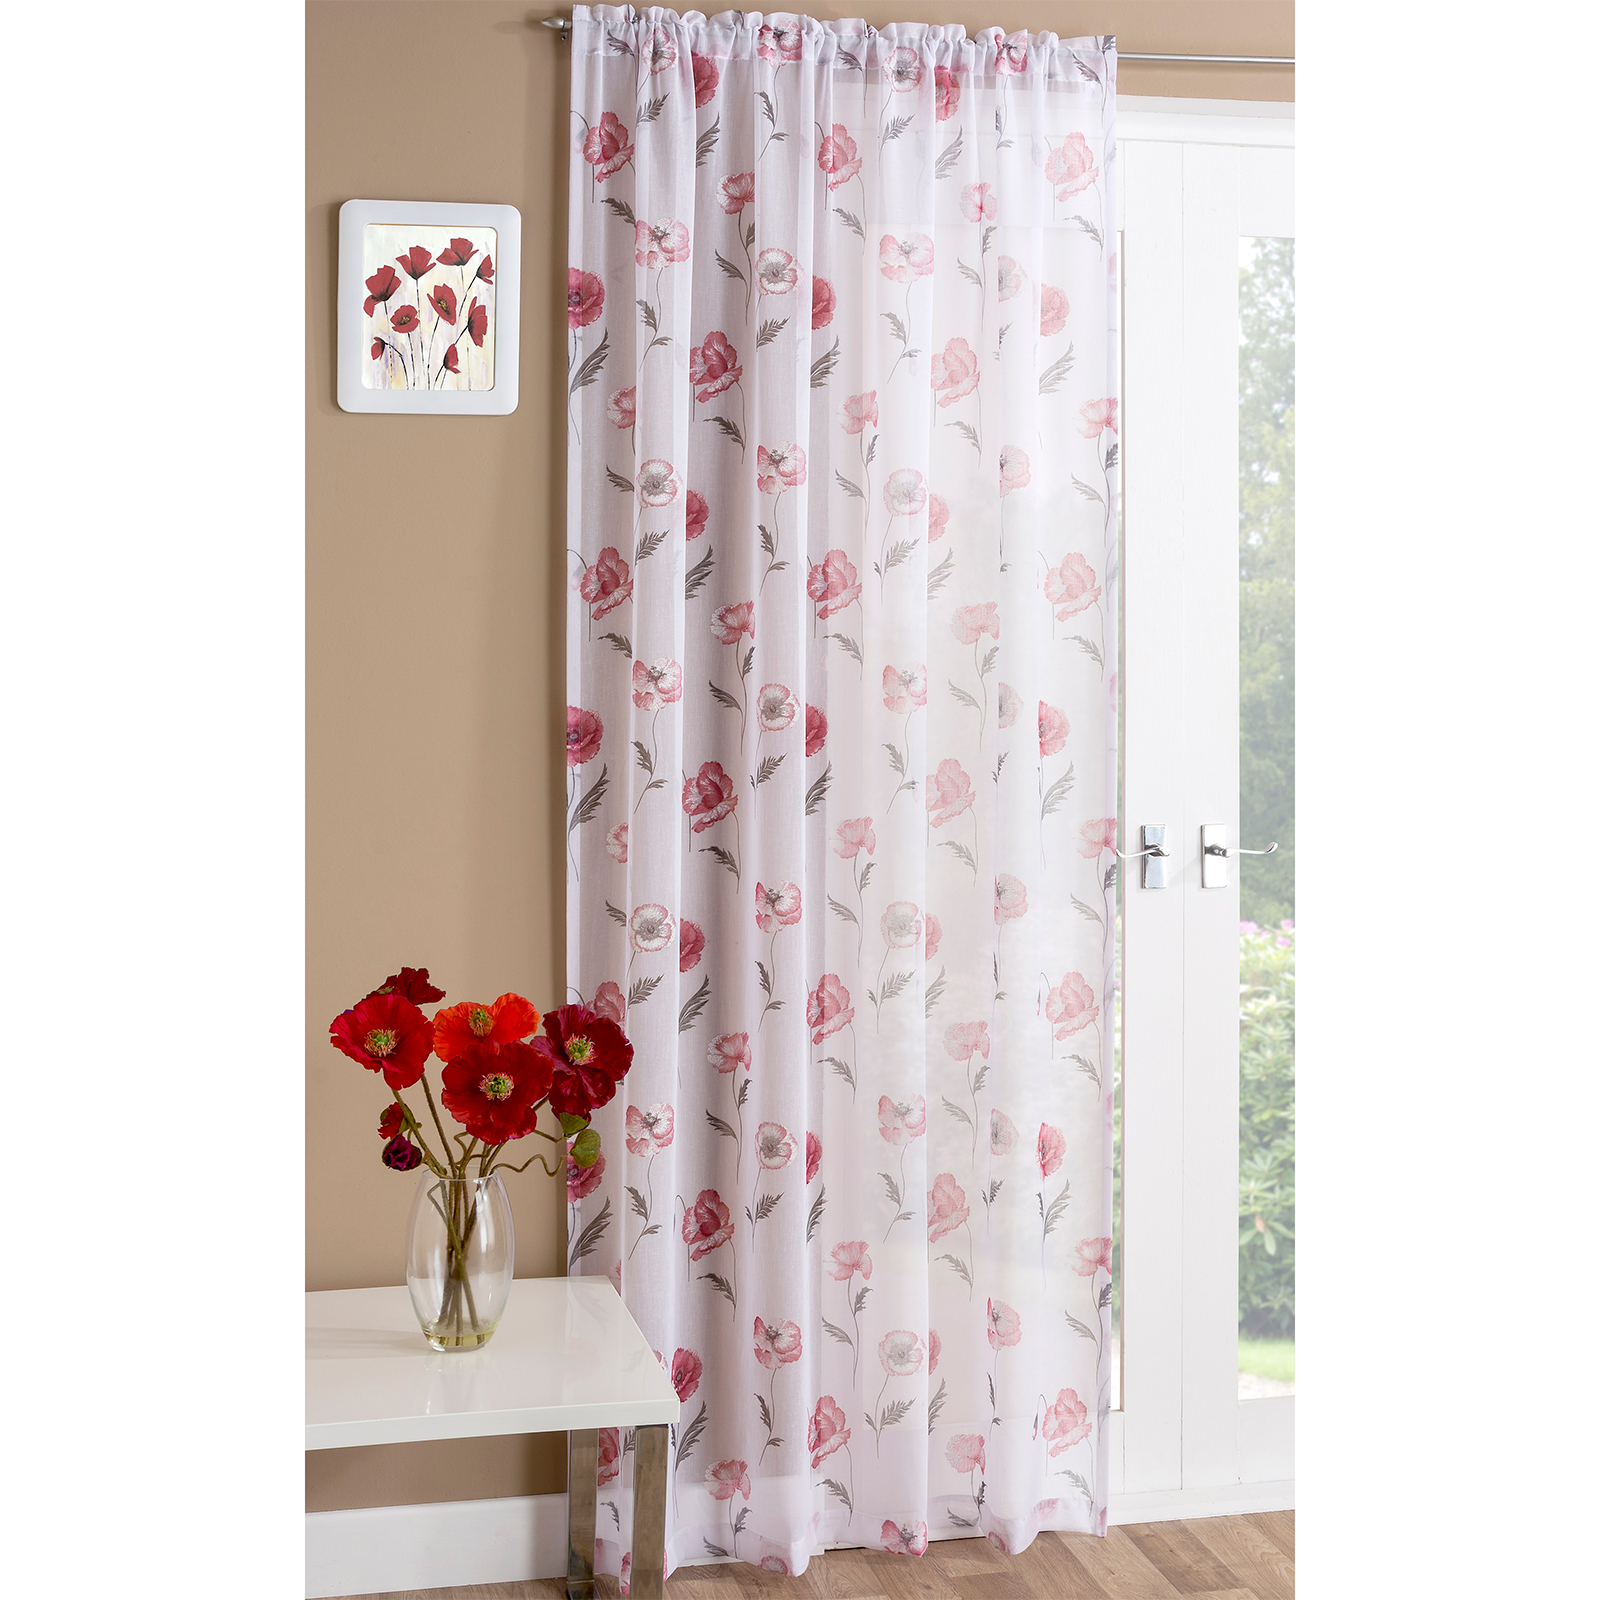 e Voile Curtain Panel with Meadow Poppy Print – Slot Top Heading